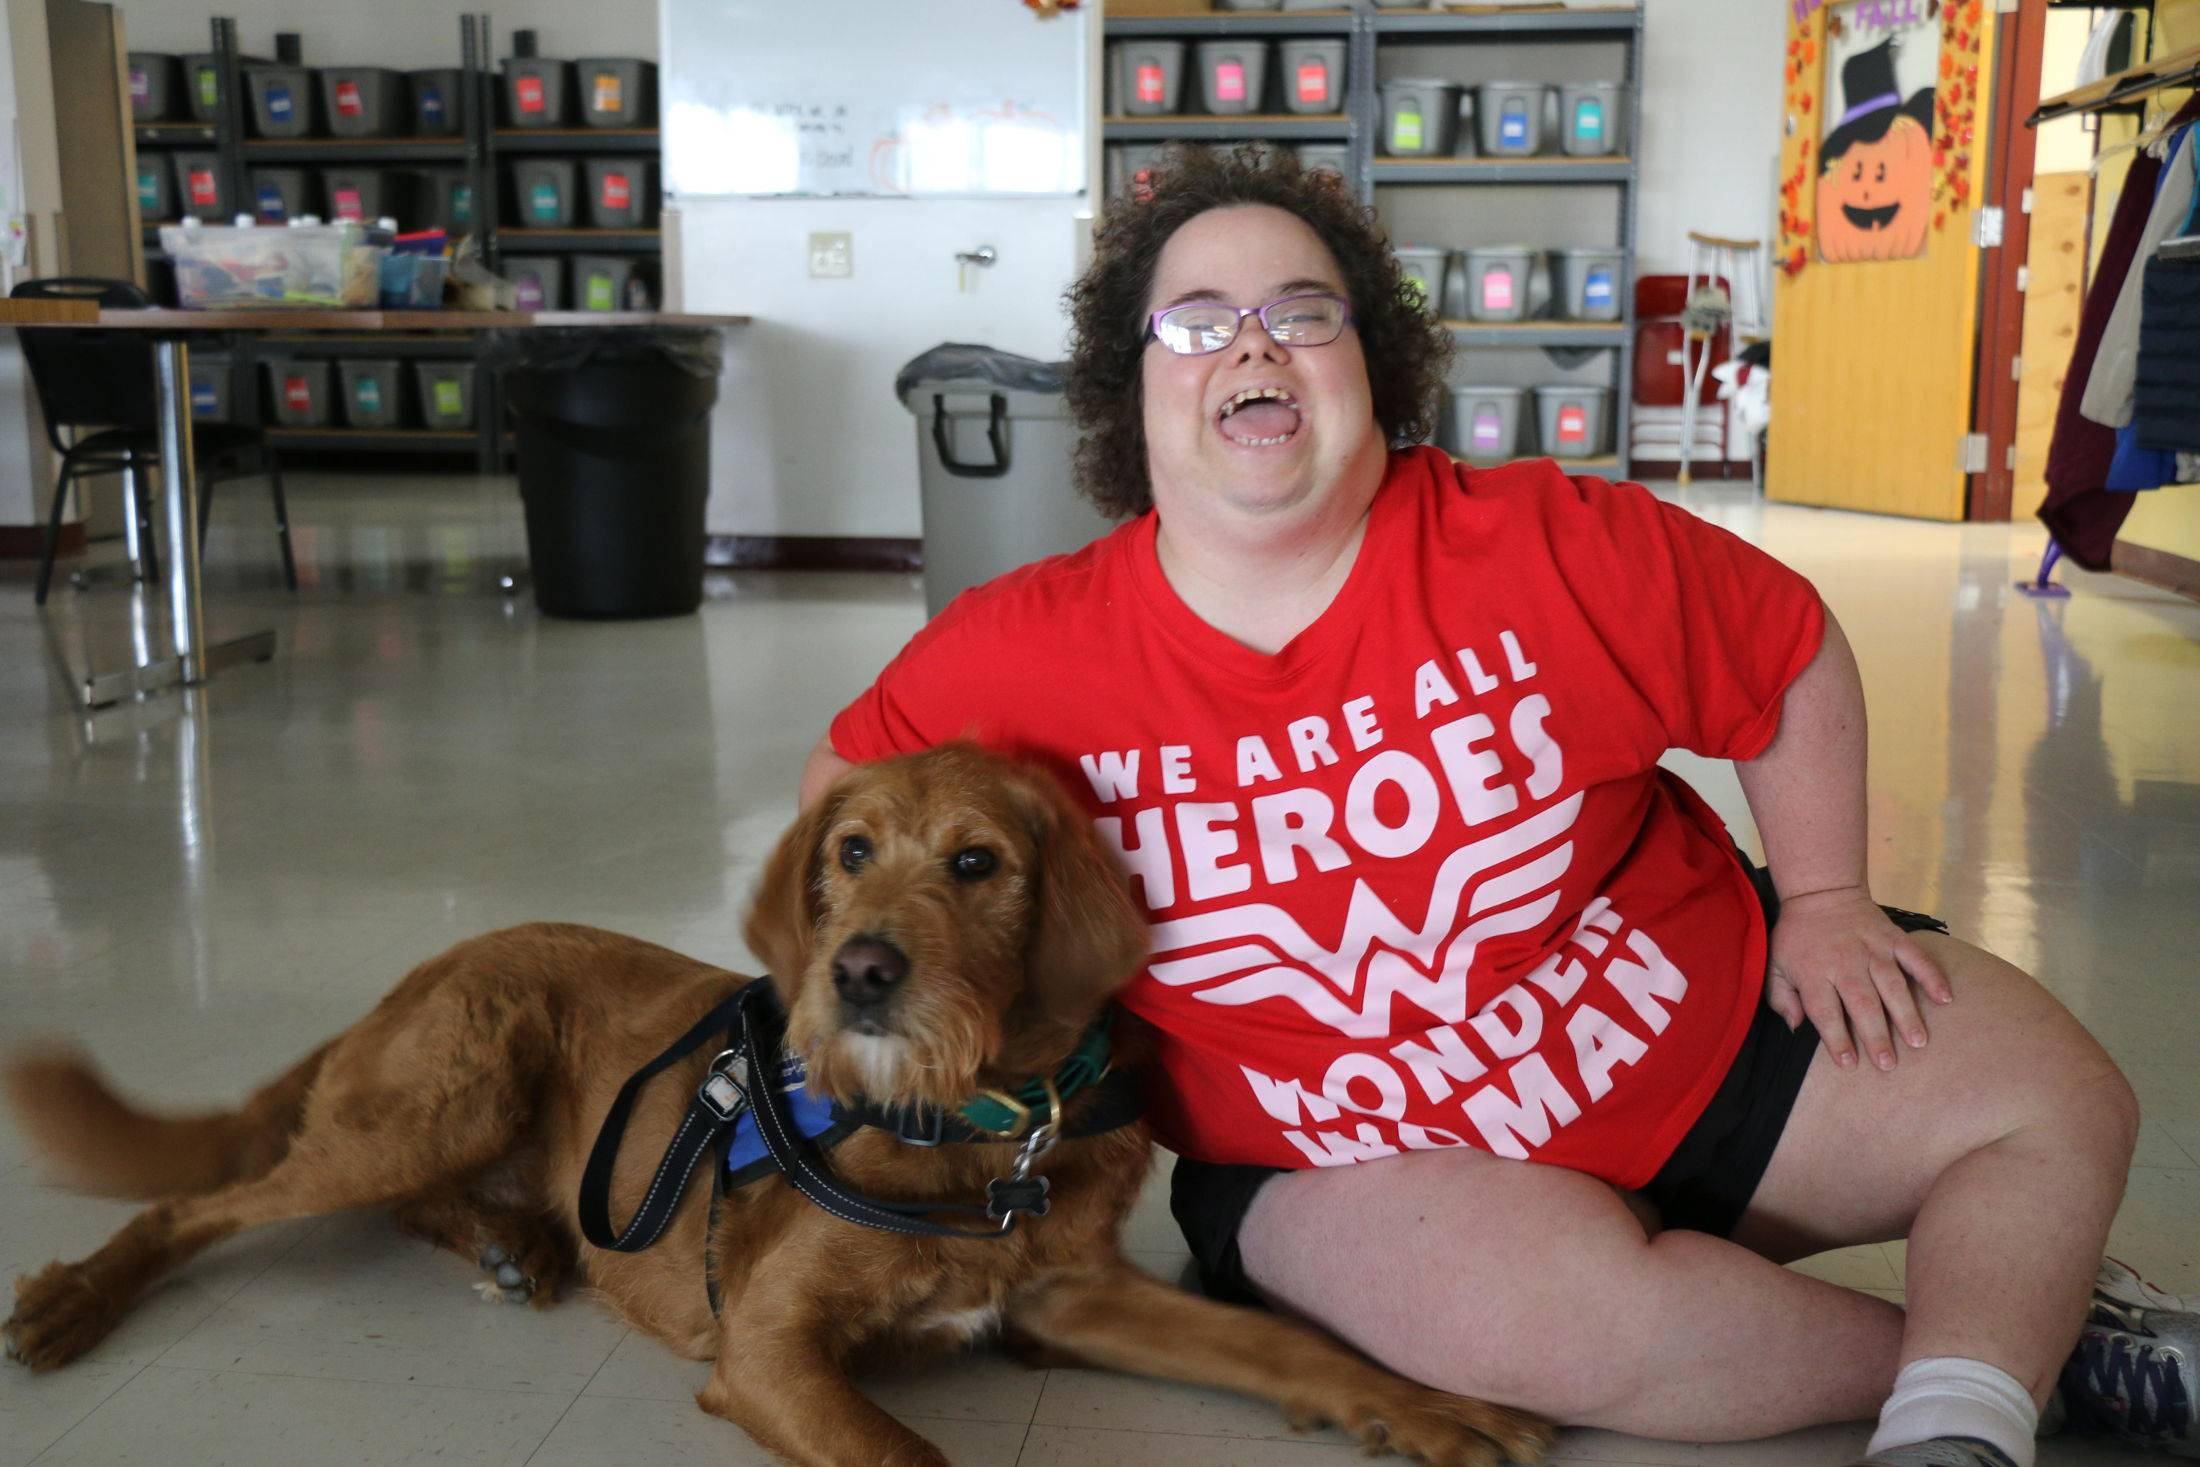 Women sitting on floor in red shirt with a dog